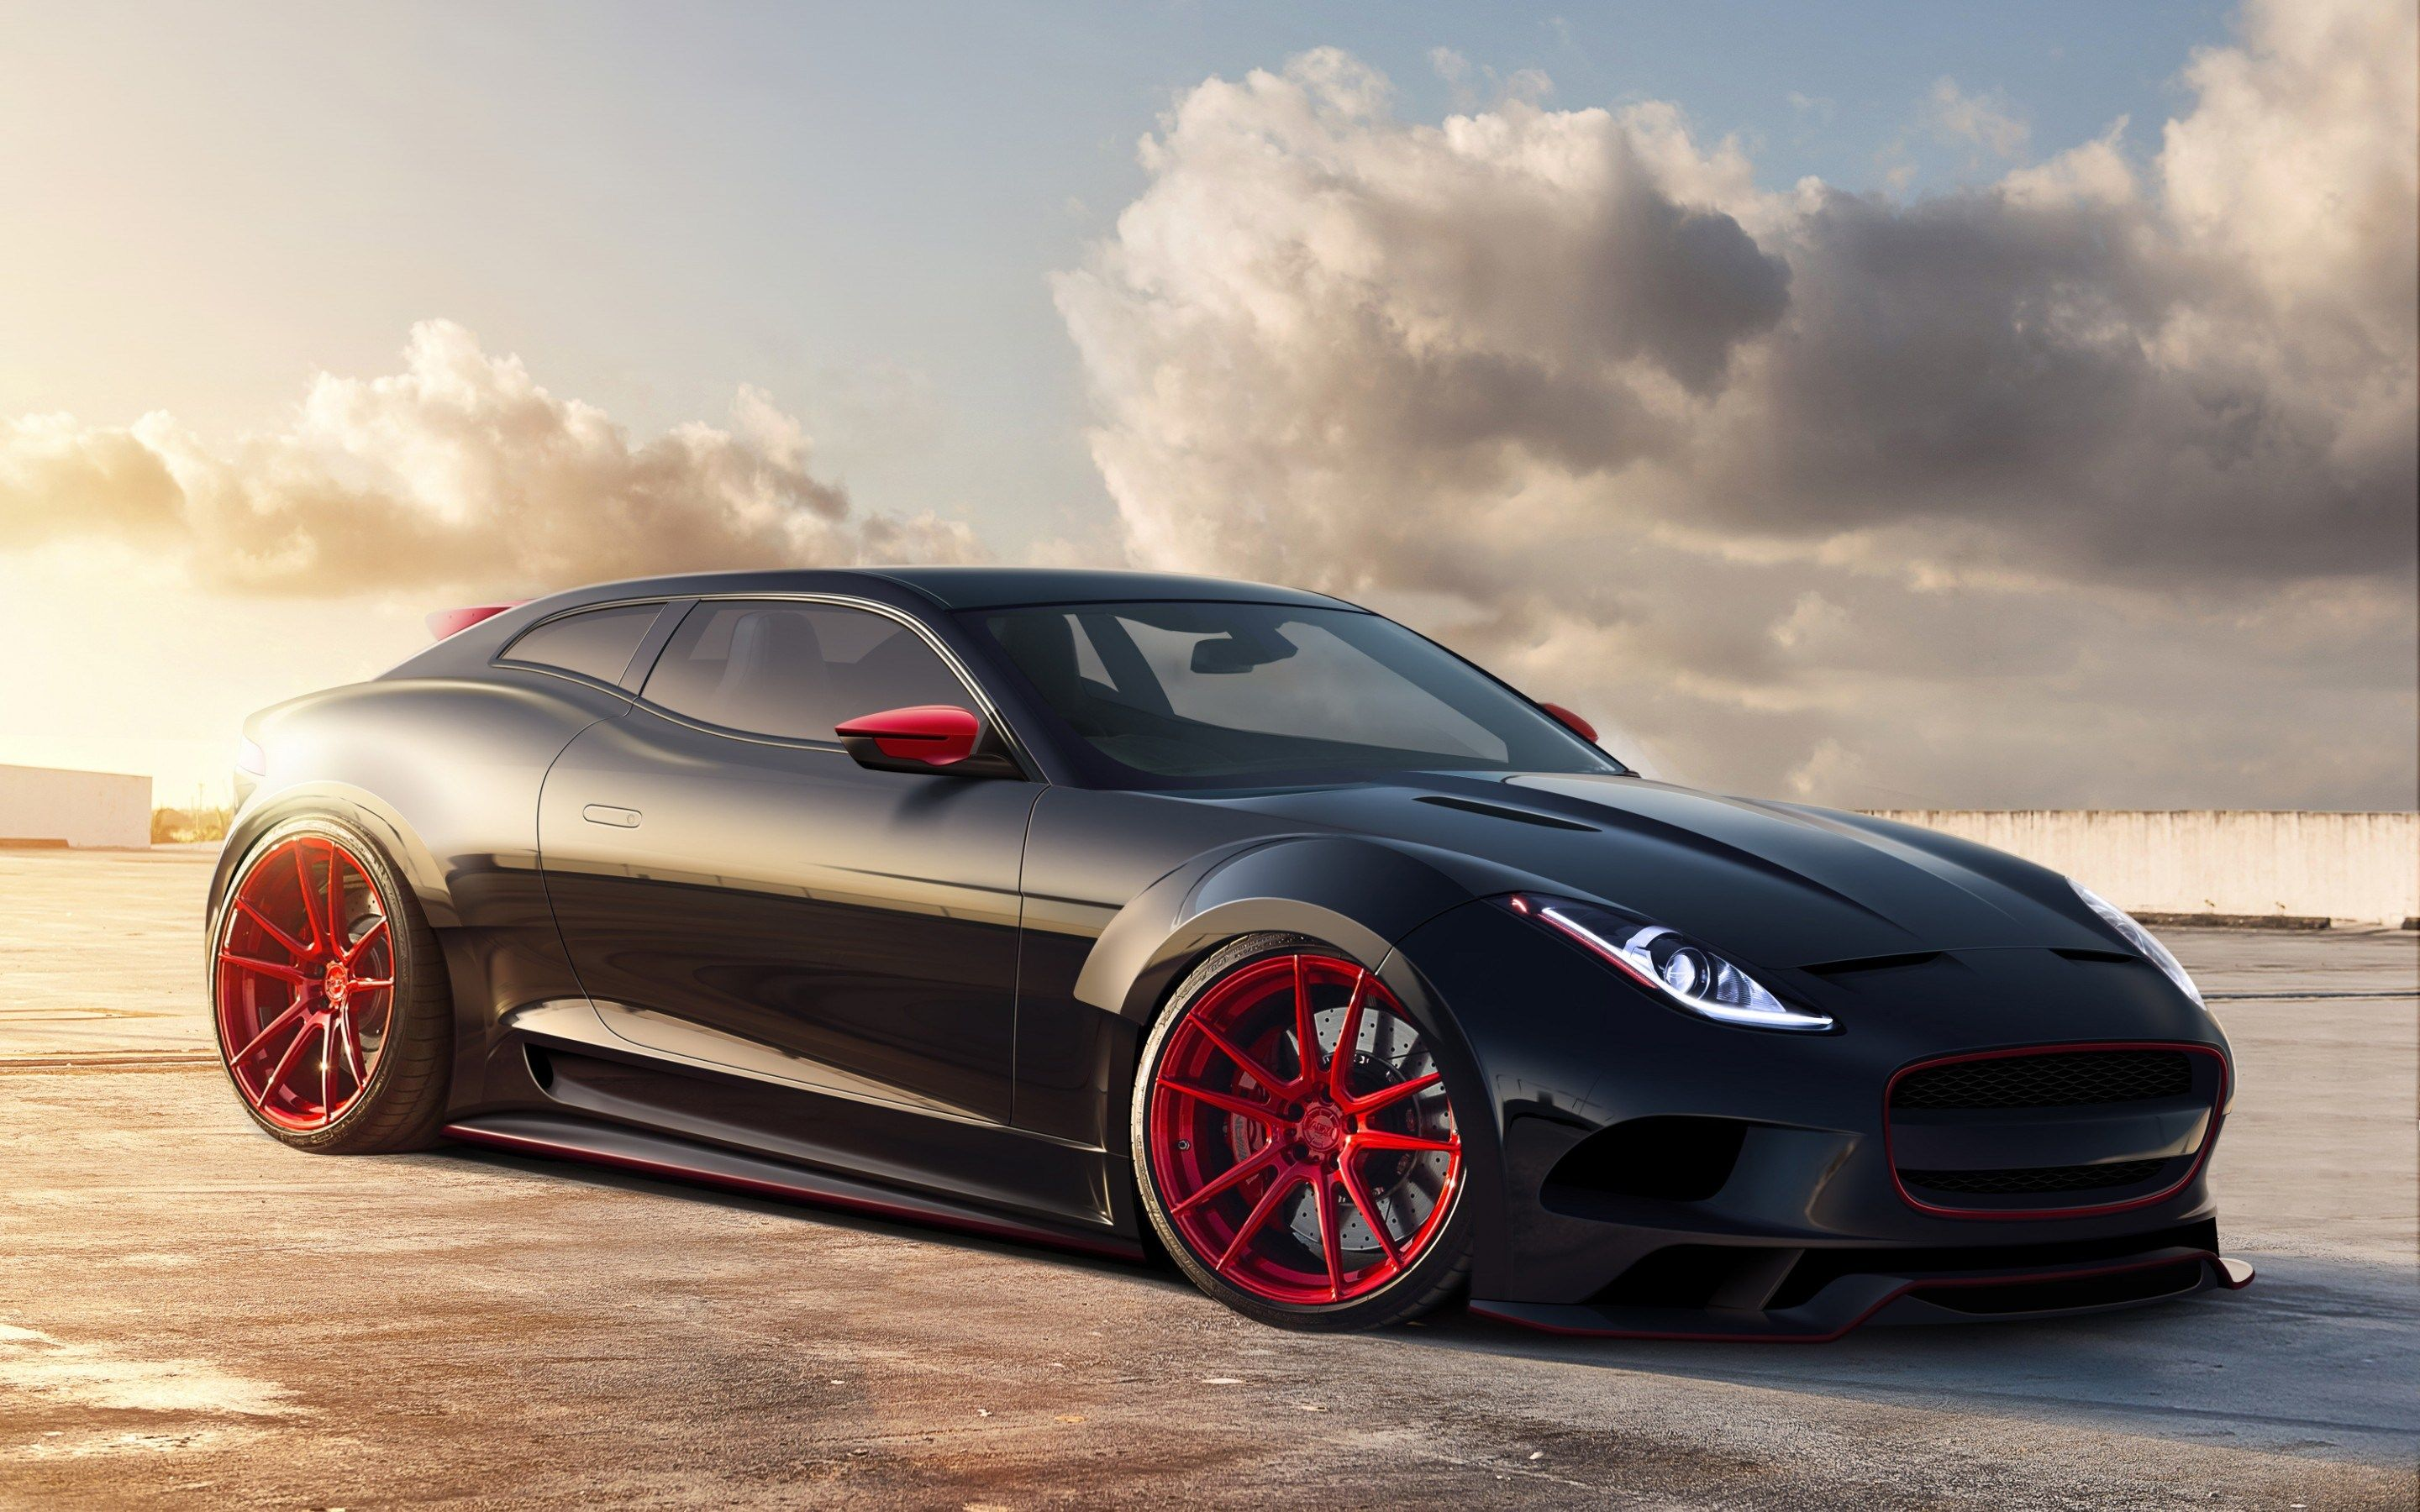 Jaguar f type svr coupe 4k or hd wallpaper for your pc mac or mobile device desktop wallpapers pinterest hd wallpaper and wallpaper